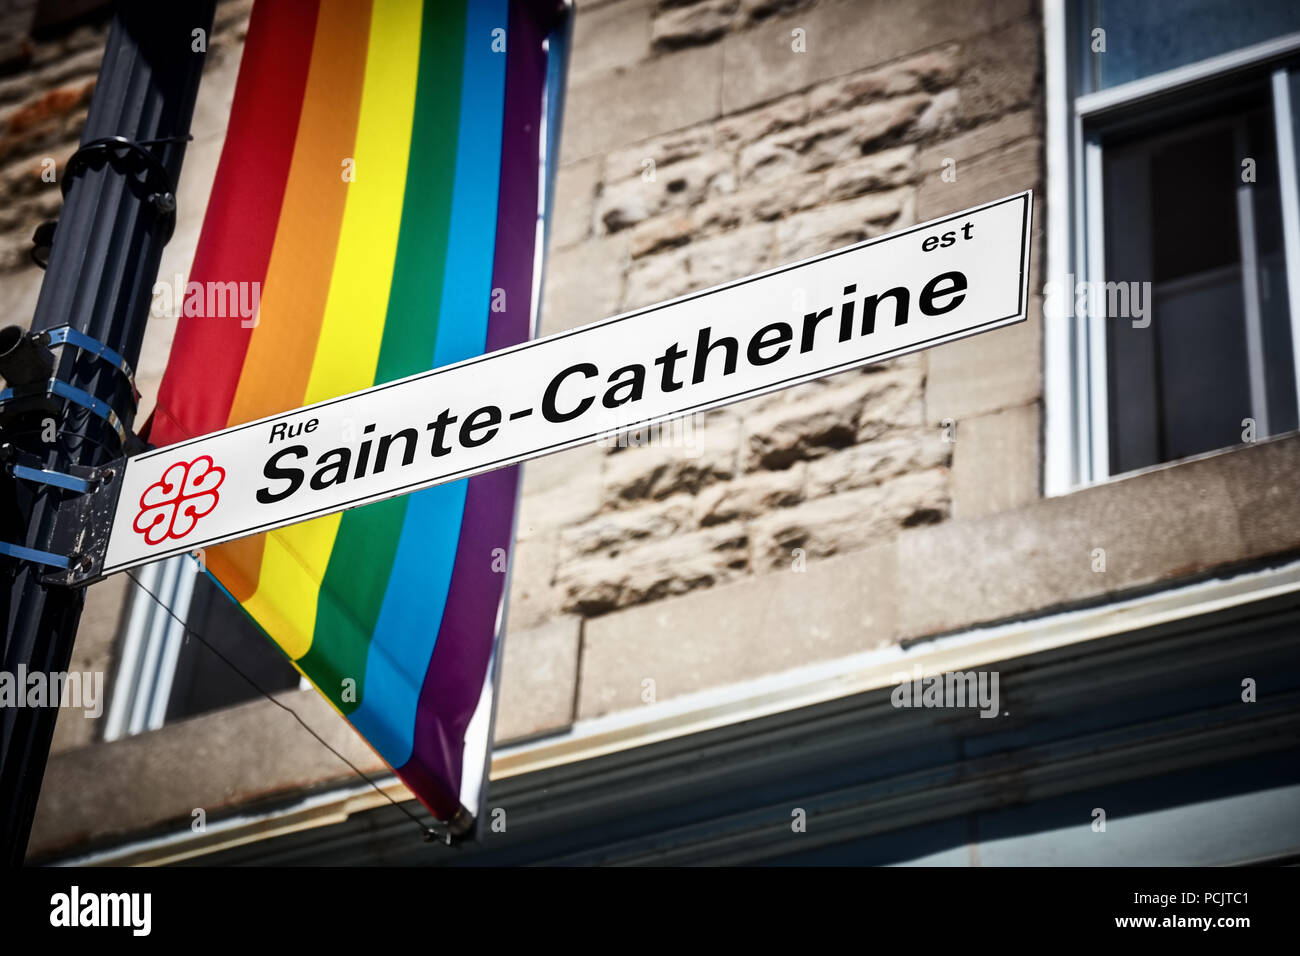 Sainte Catherine street sign and a rainbow gay pride flag in gay village of Montreal, Canada - Stock Image